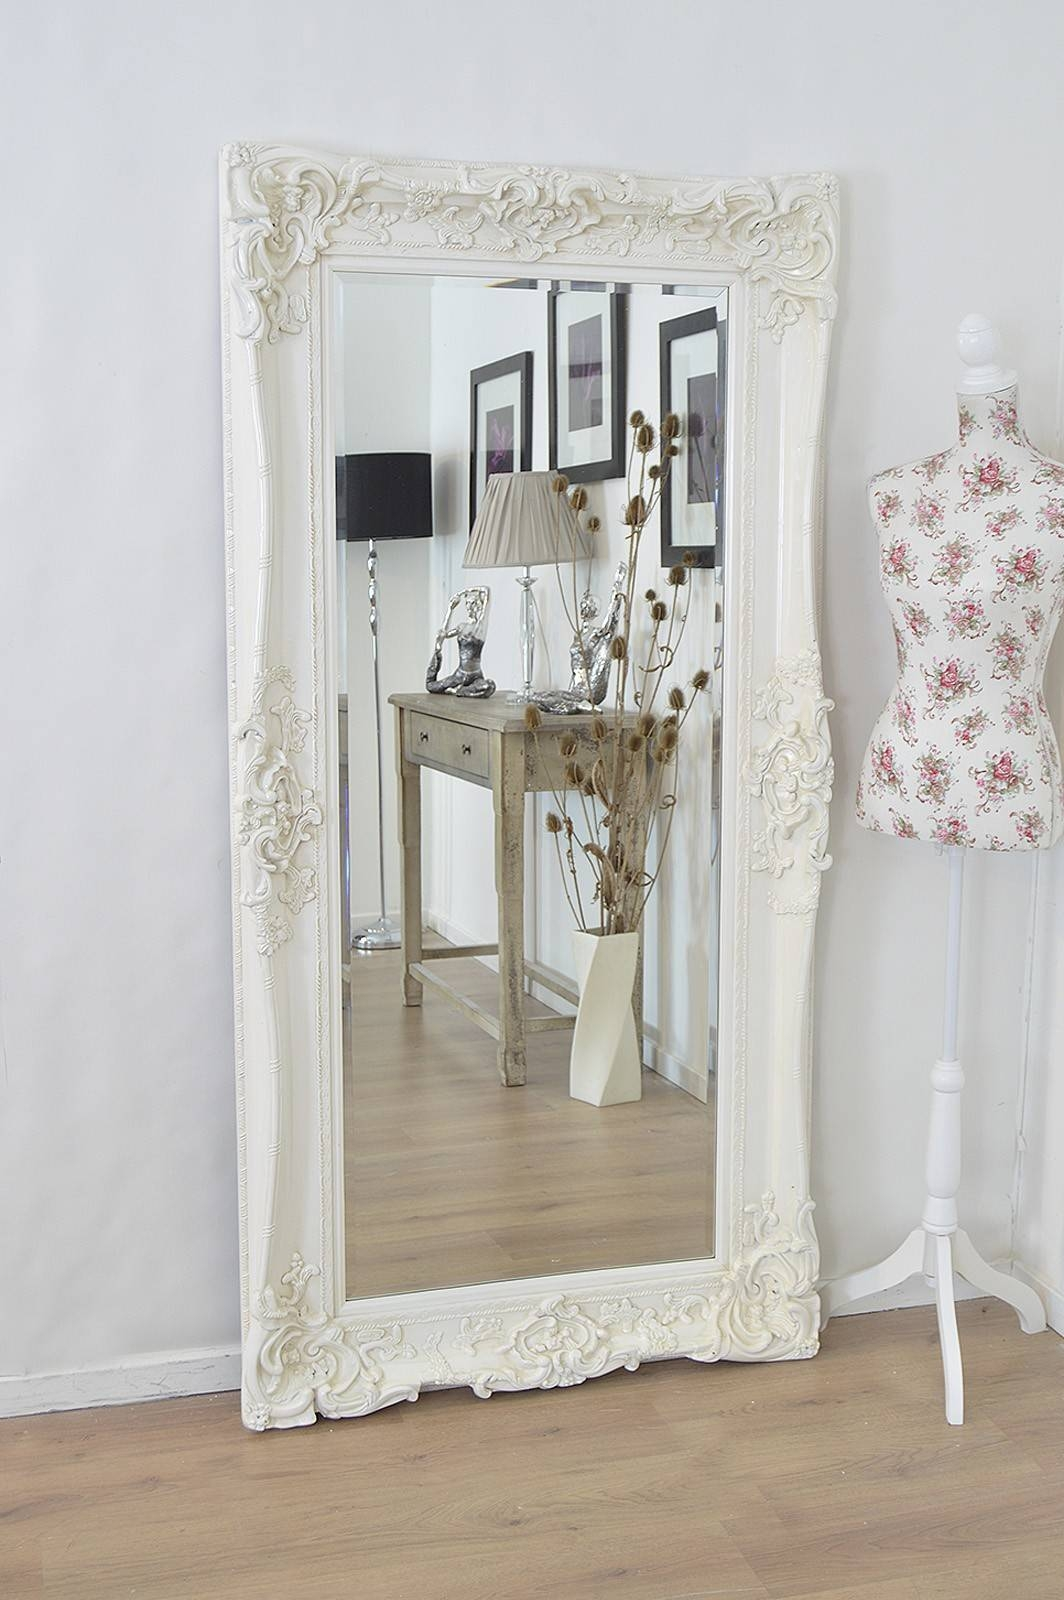 Shabby Chic Wall Mirror 40 Nice Decorating With Vintage Shabby with regard to Shabby Chic Floor Mirrors (Image 23 of 25)